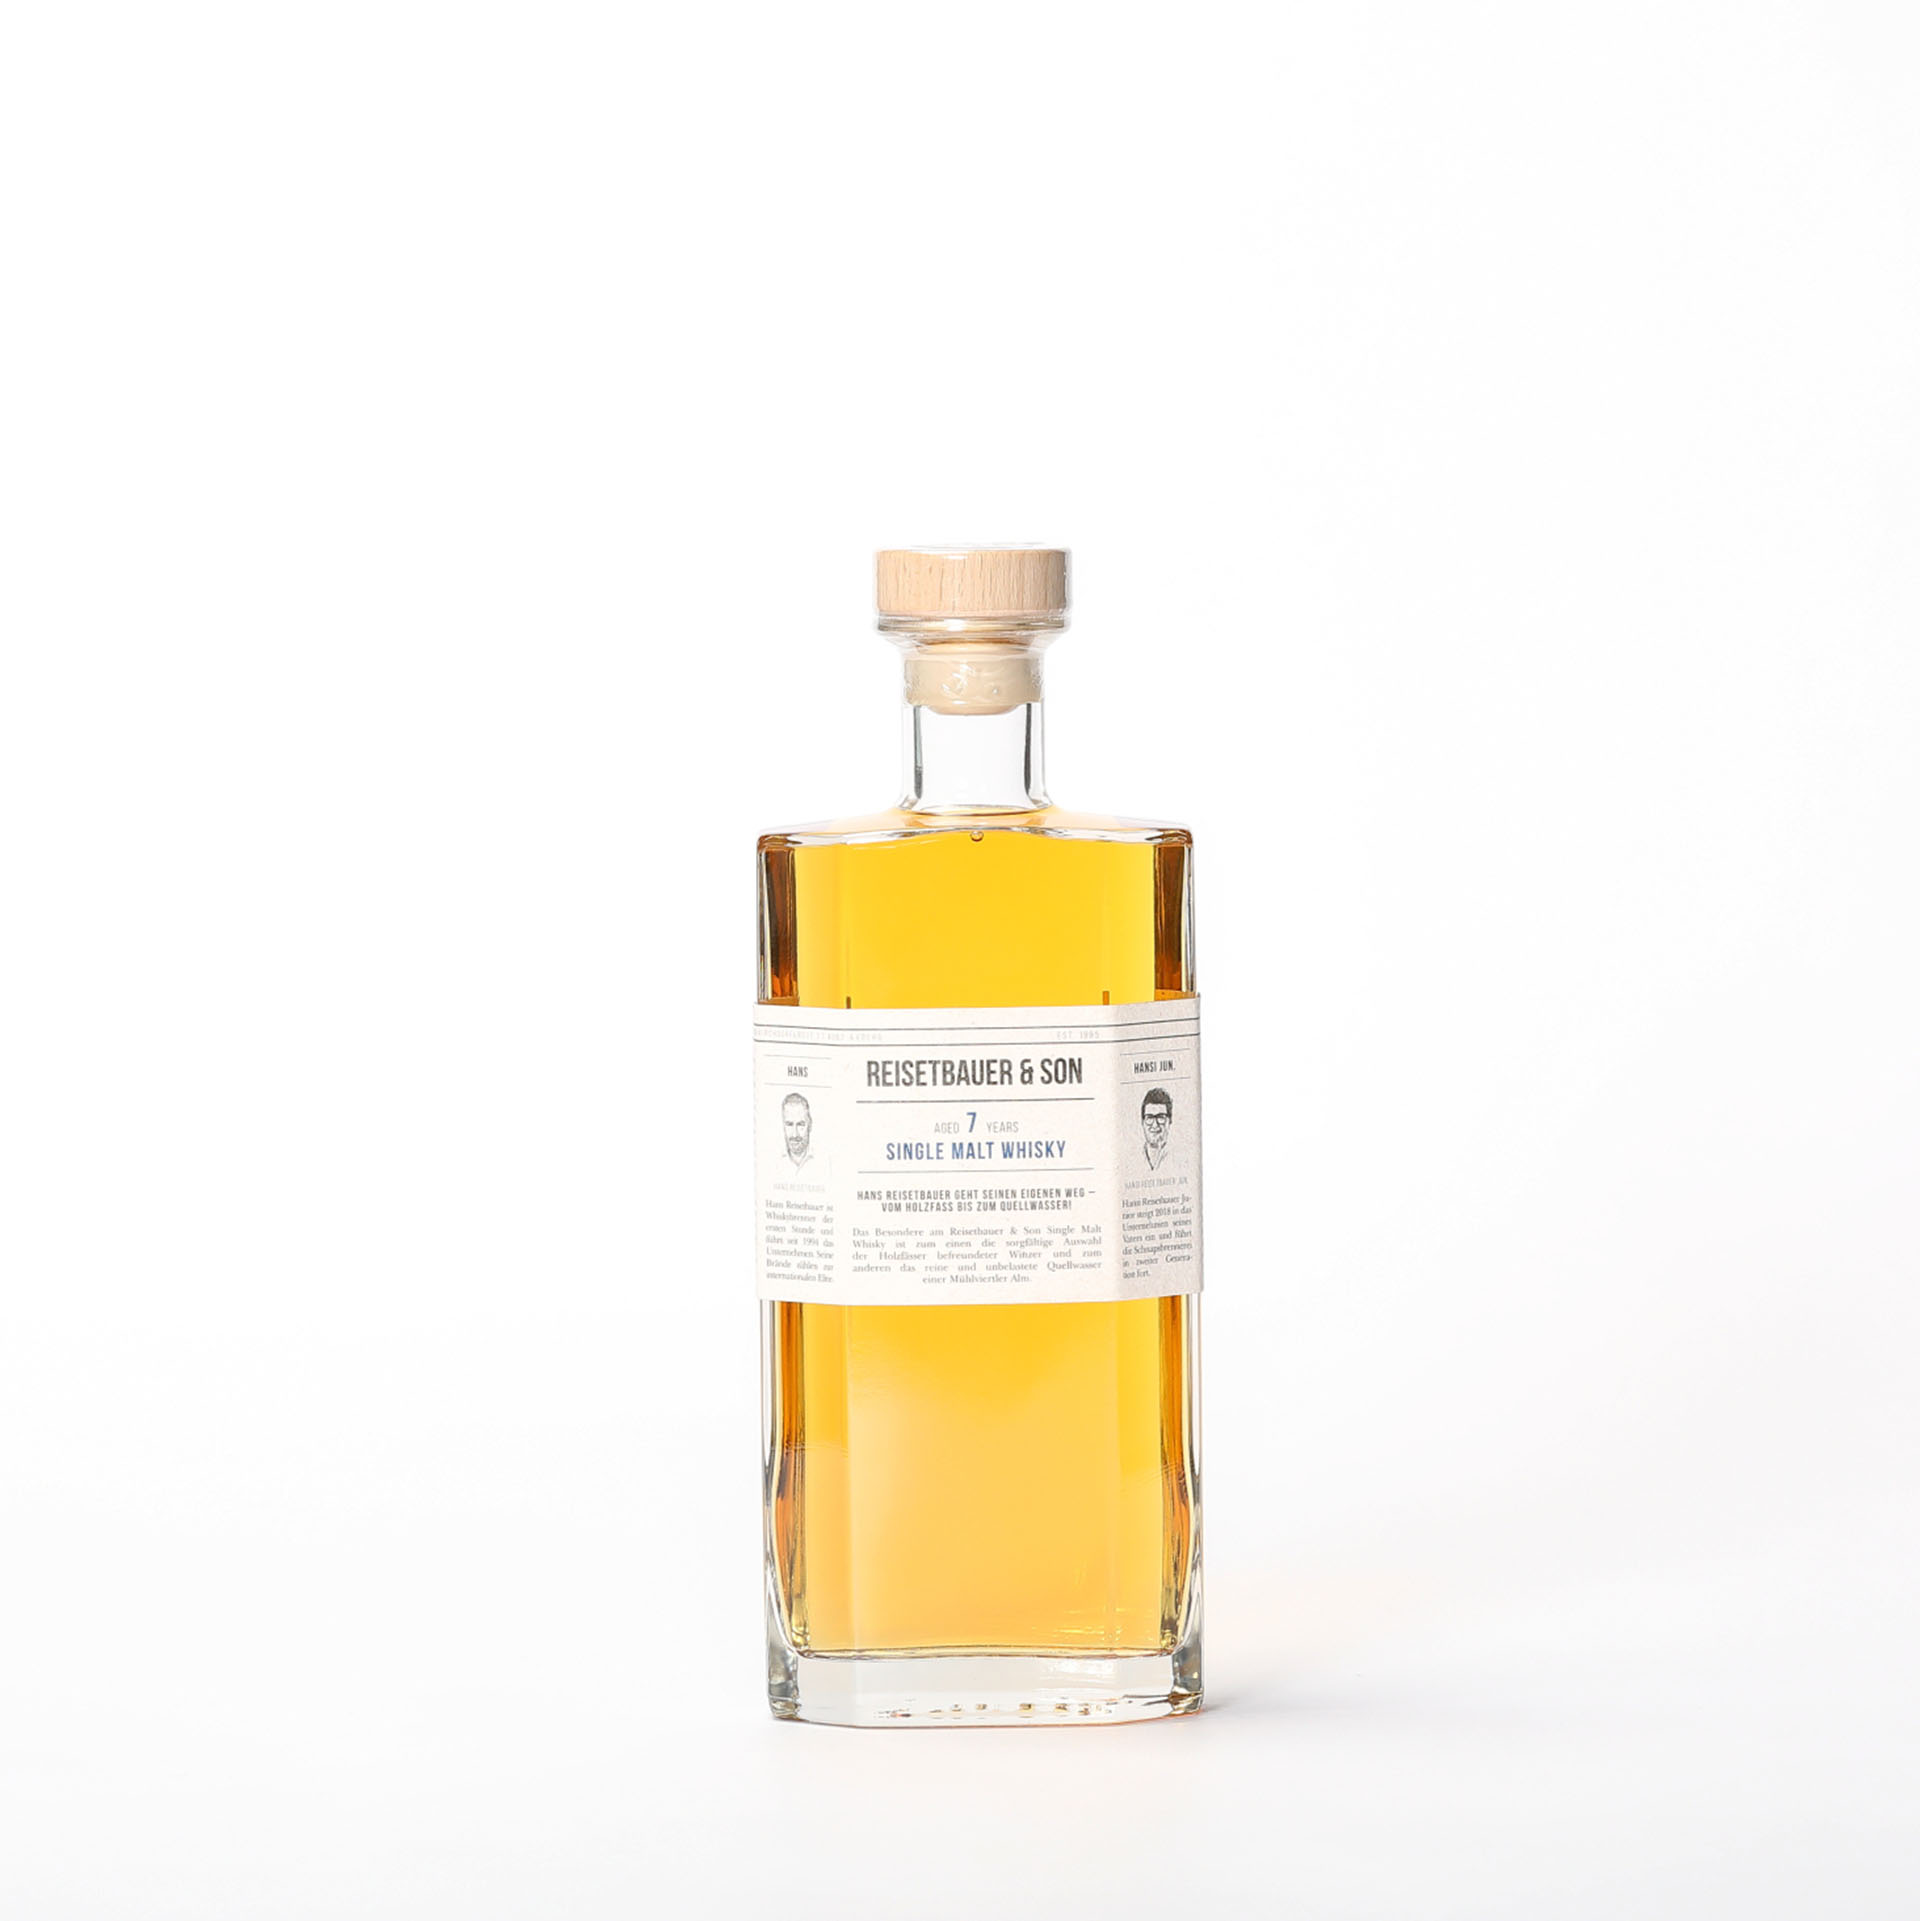 Single Malt Whisky 7 years - Reisetbauer & Son